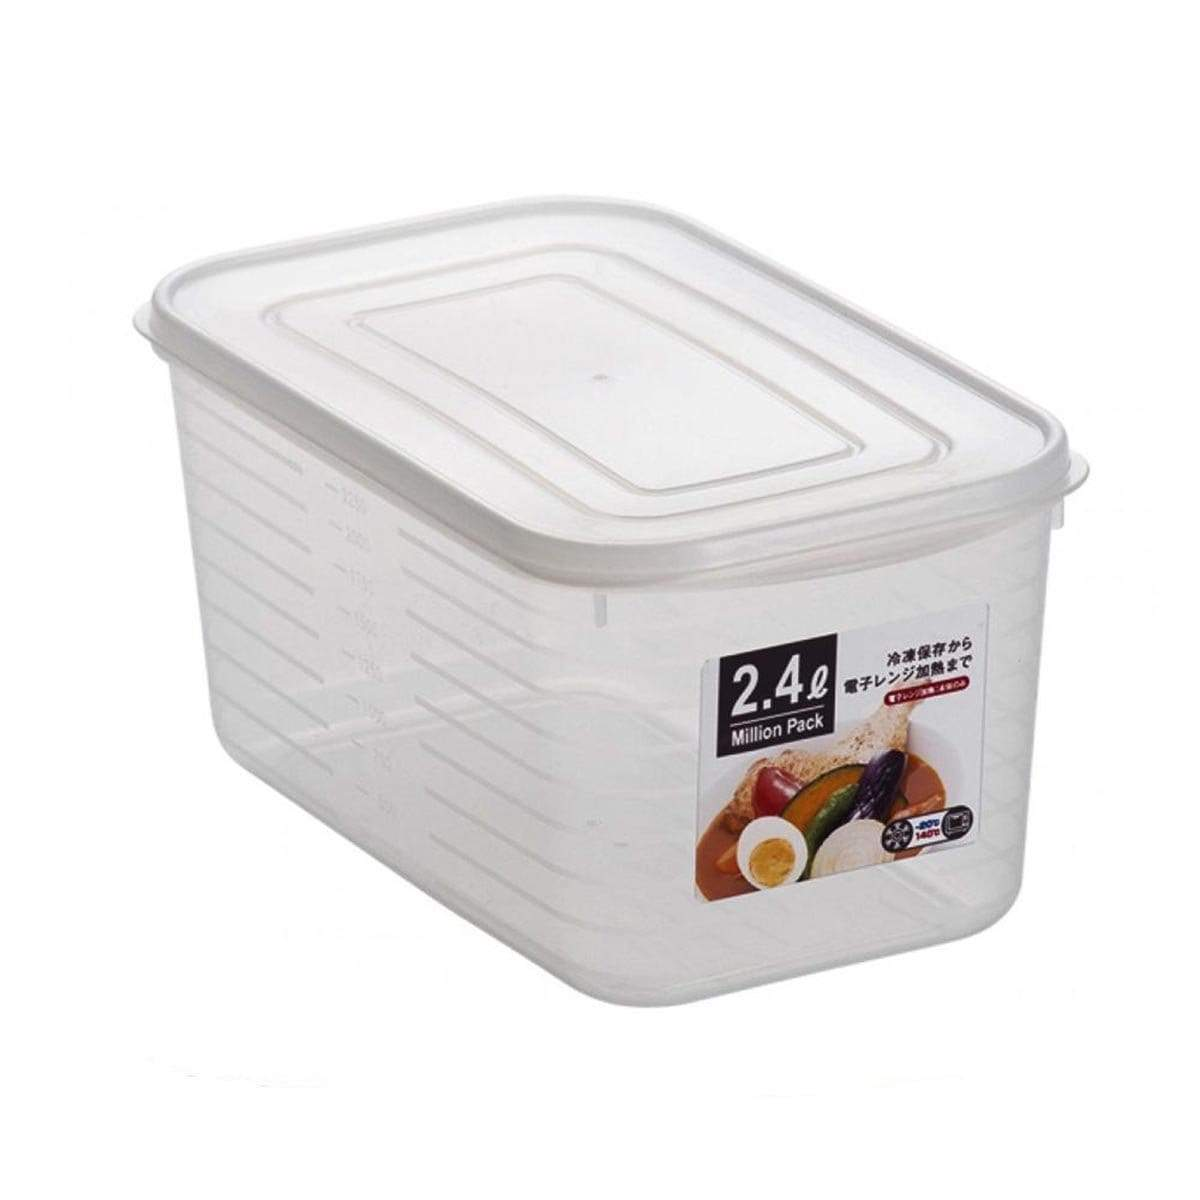 Japanese Large Plastic Square Food Container Box with Lid 2400 White